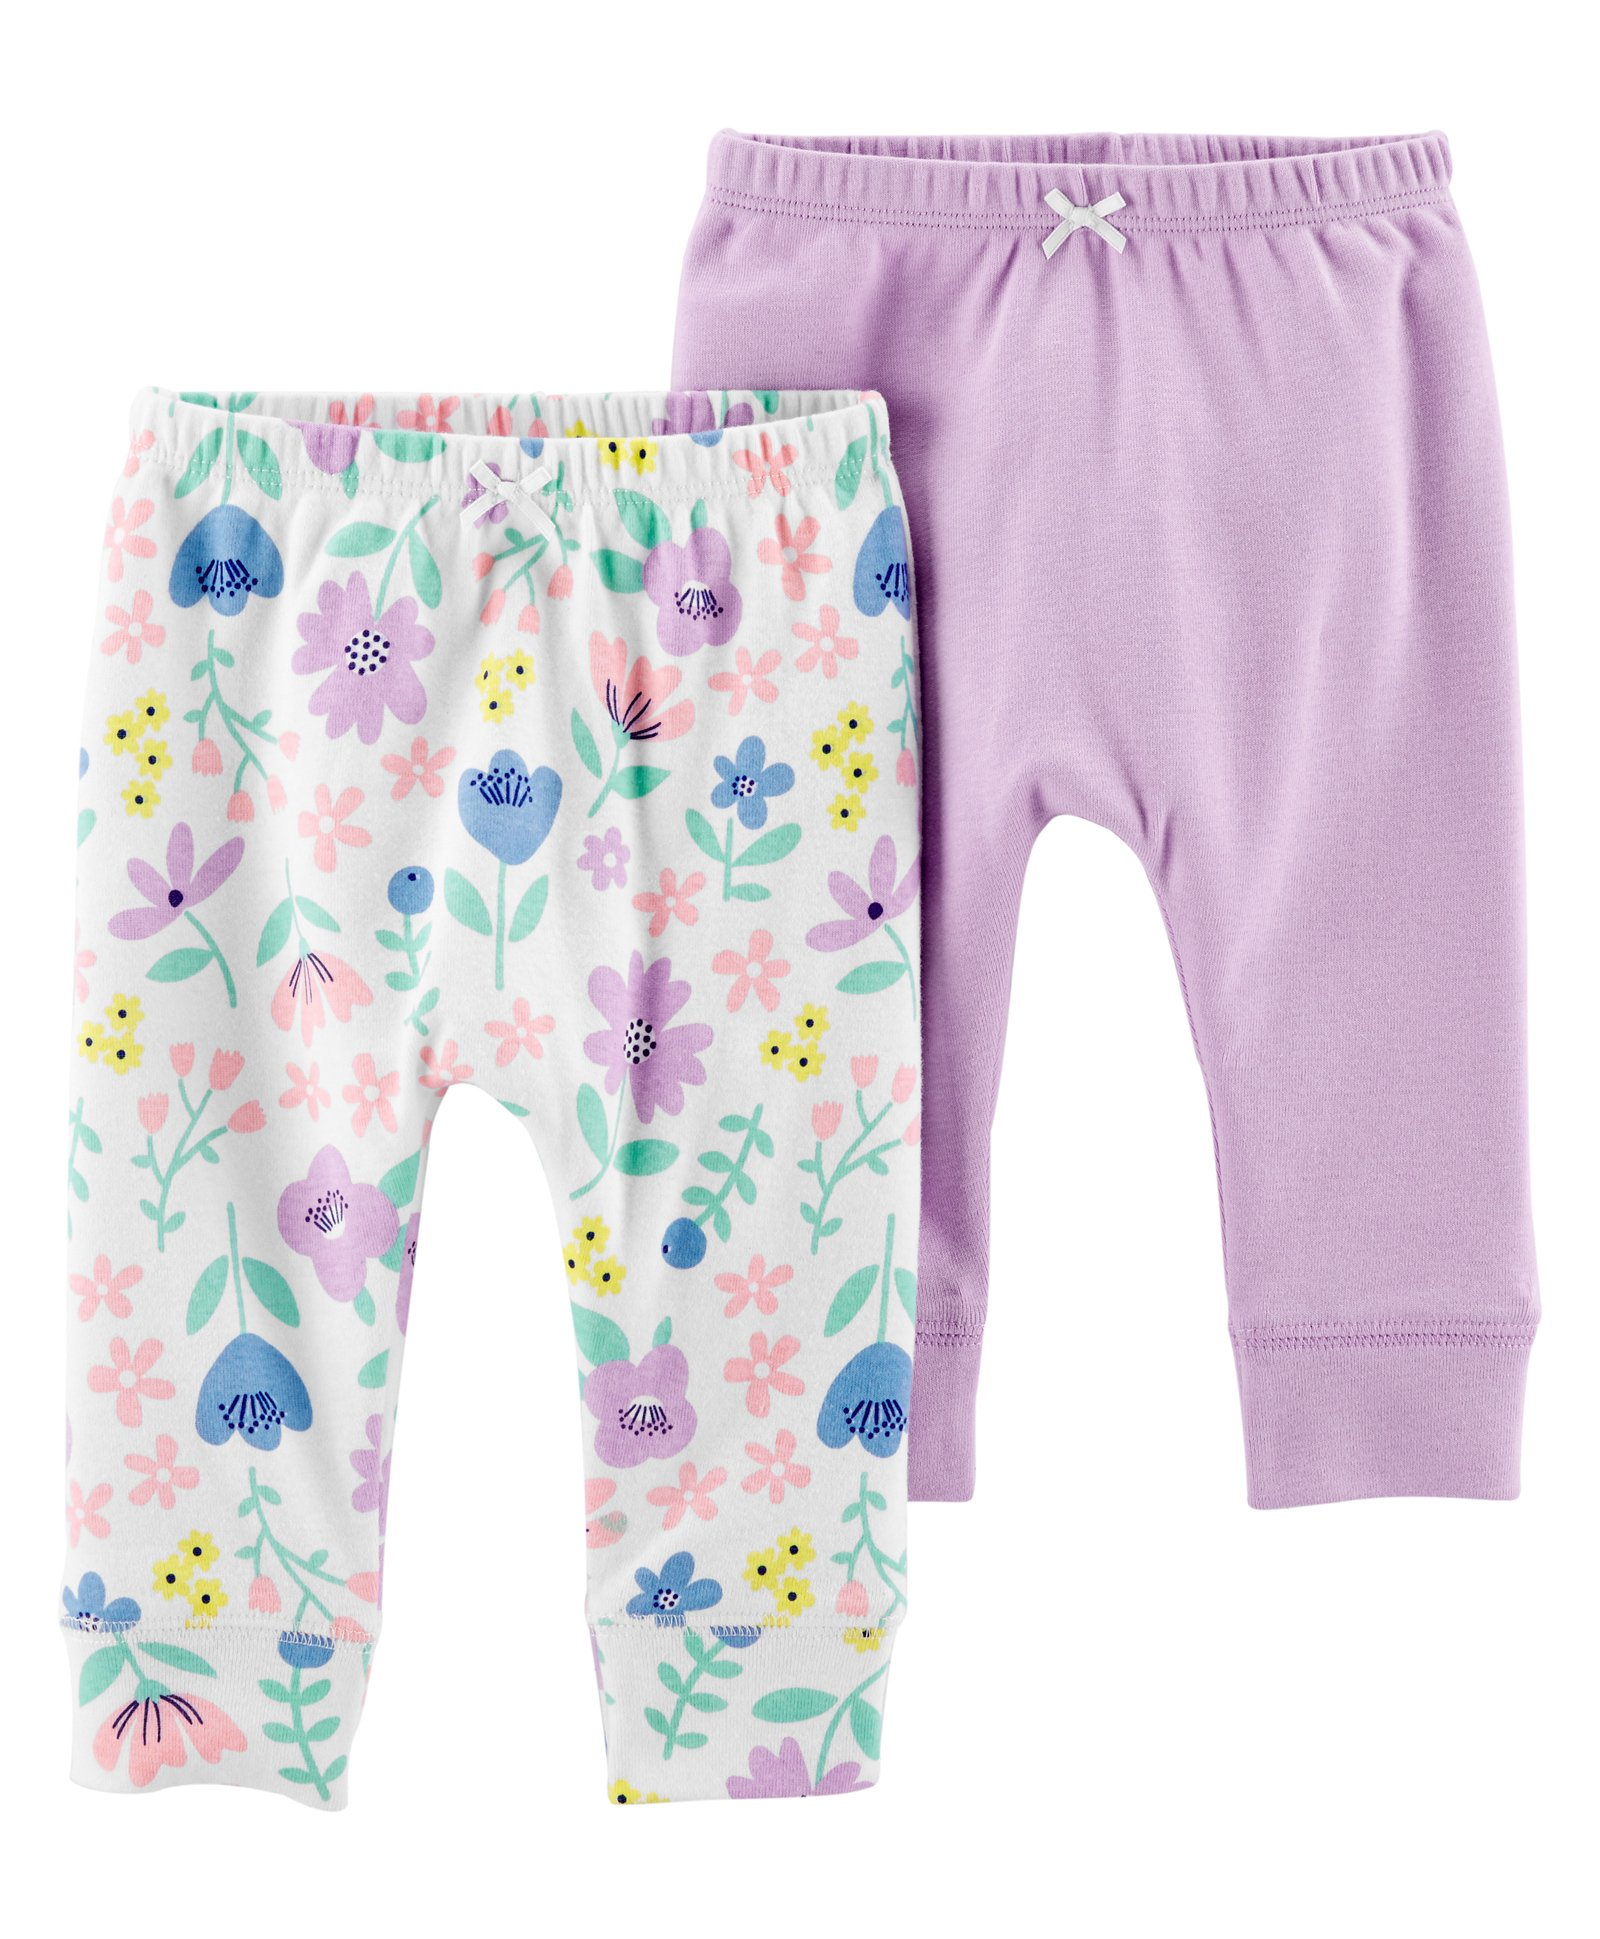 Carters Girls 2 Pack Jersey Leggings Yellow//Pink 3 Months